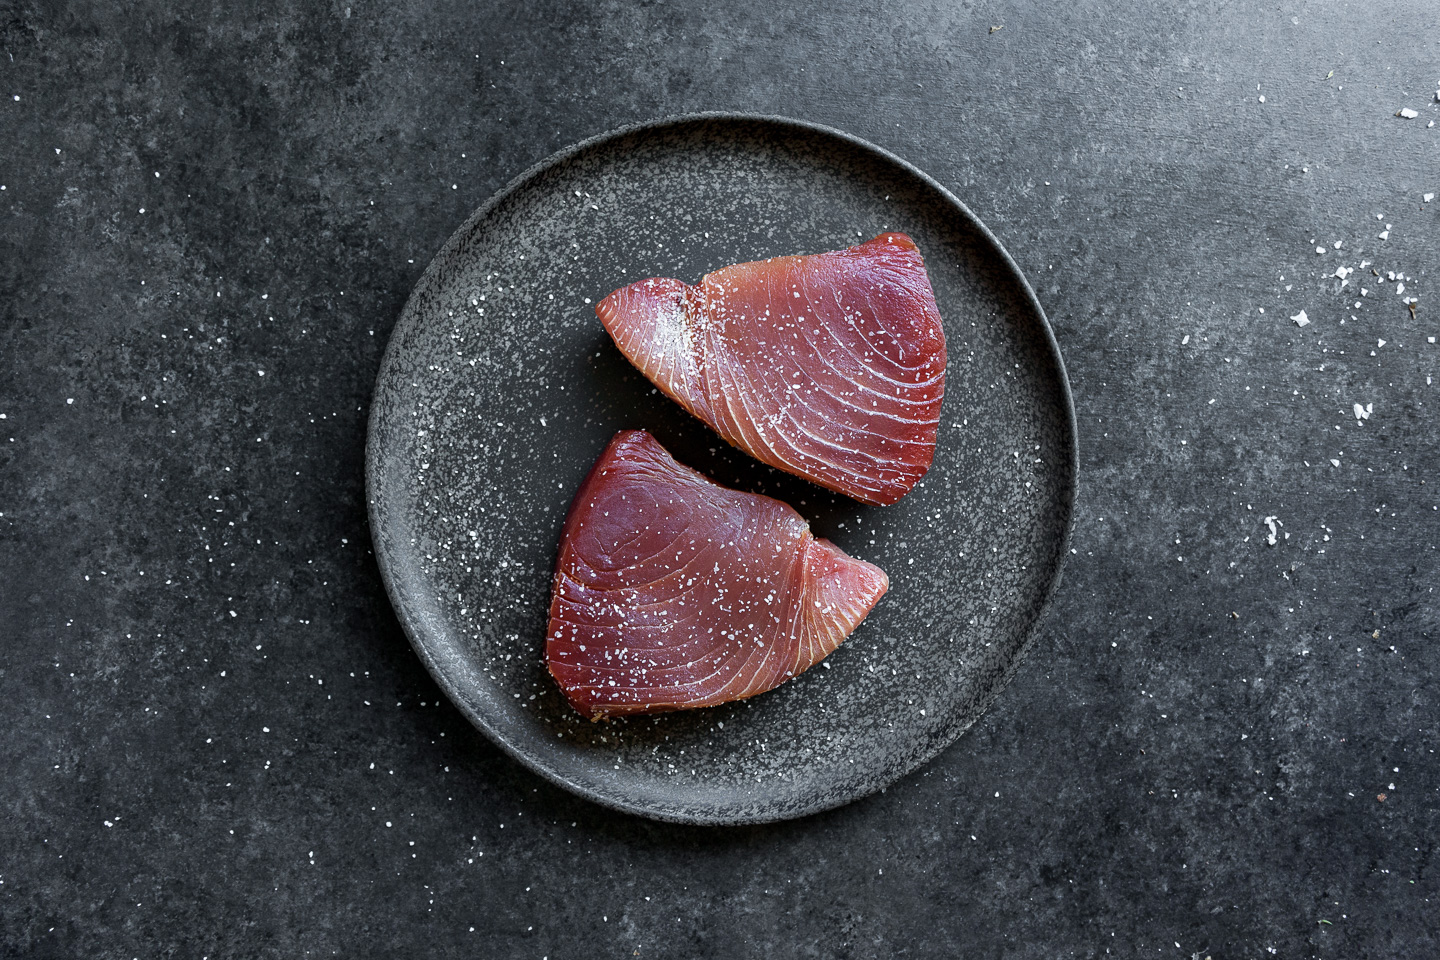 Pan-Seared Yellowfin Tuna